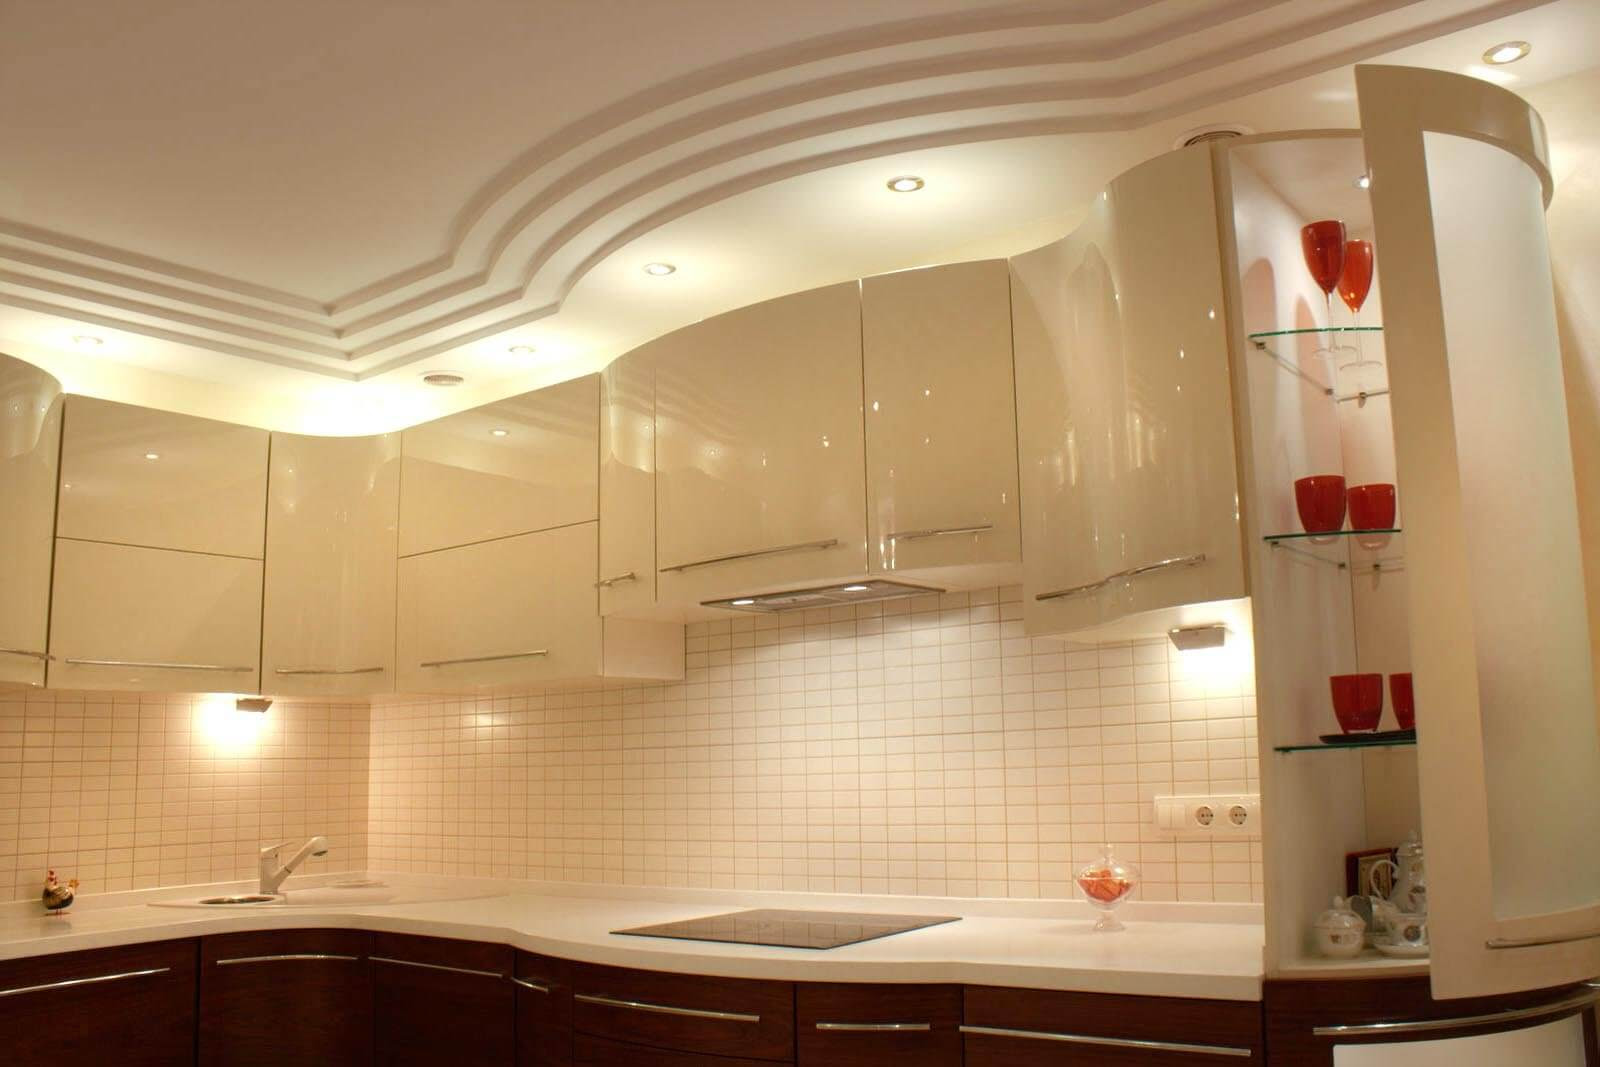 Plasterboard Ceiling Finishing Design Ideas for Apartment